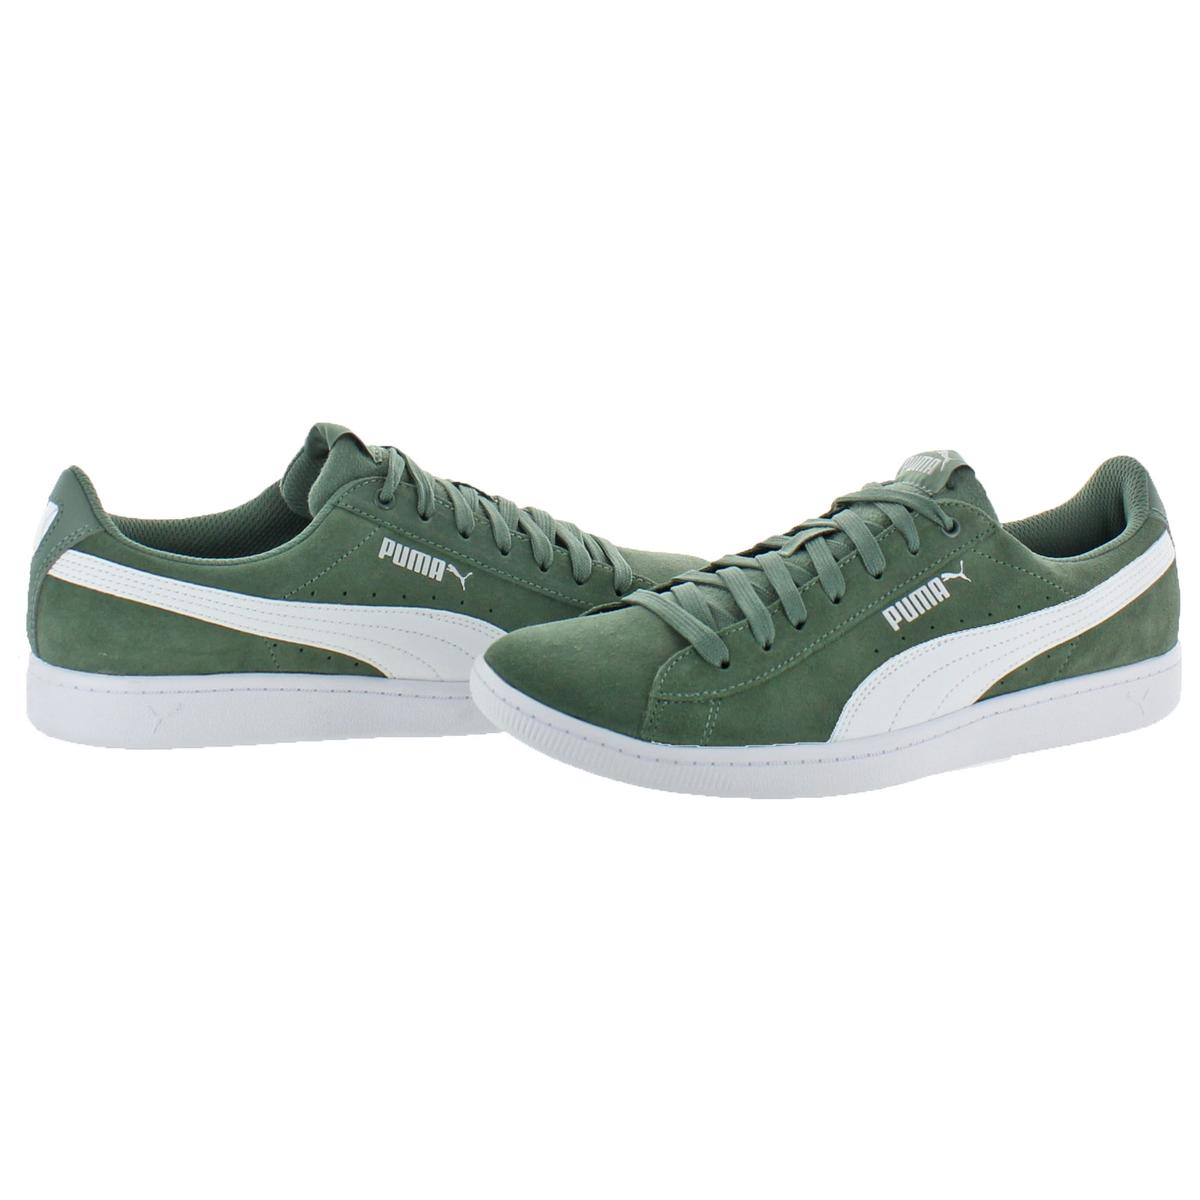 Puma-Vikky-Women-039-s-Suede-Softfoam-Court-Low-Top-Fashion-Sneaker-Shoes